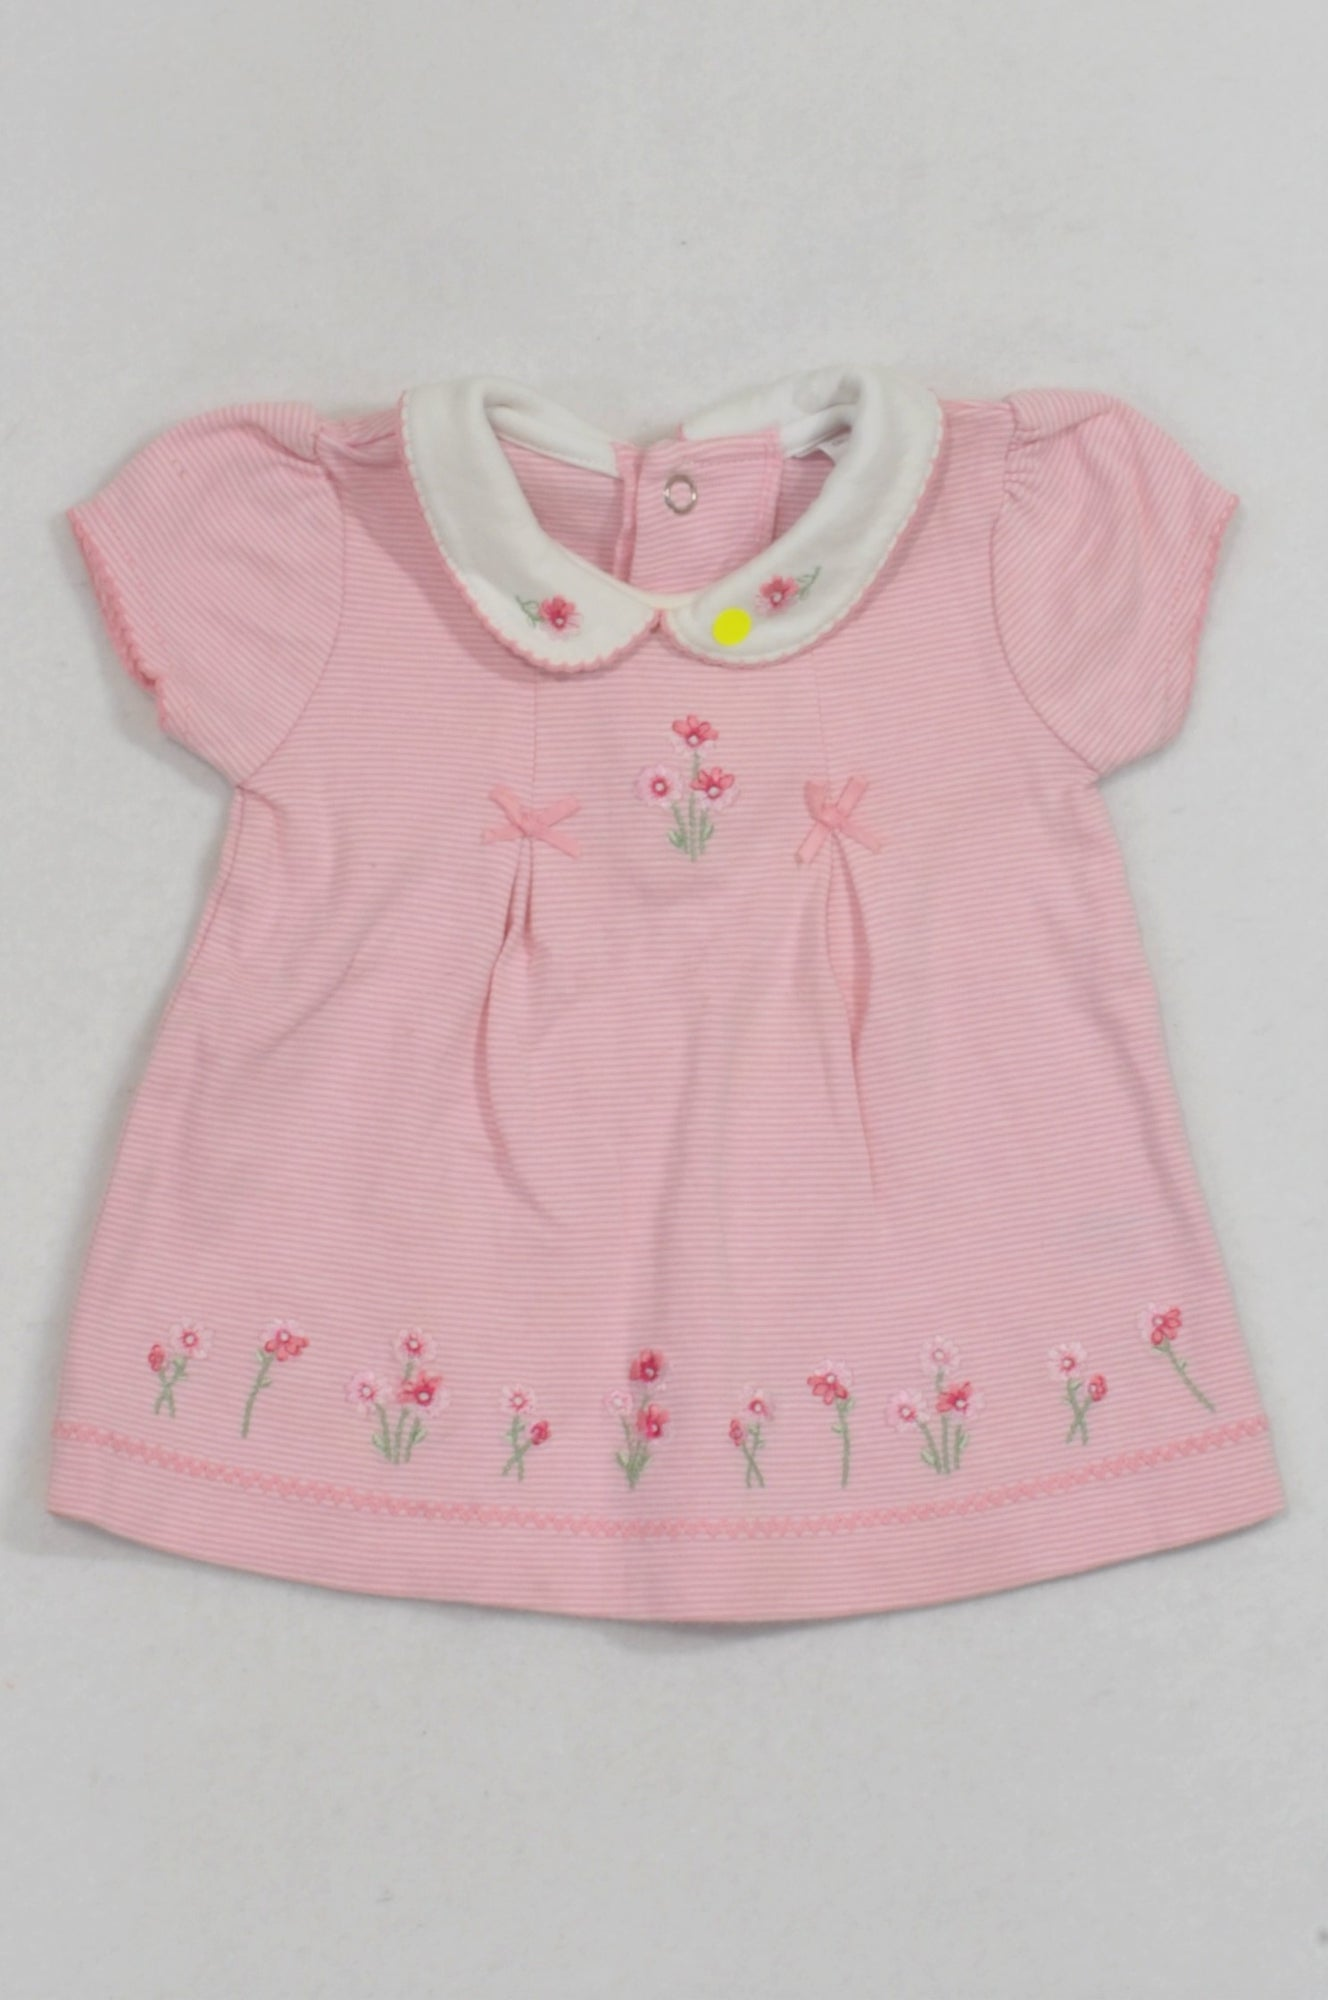 Carter's Pink Thin Stripe Floral Embroidered Dress Girls 0-3 months